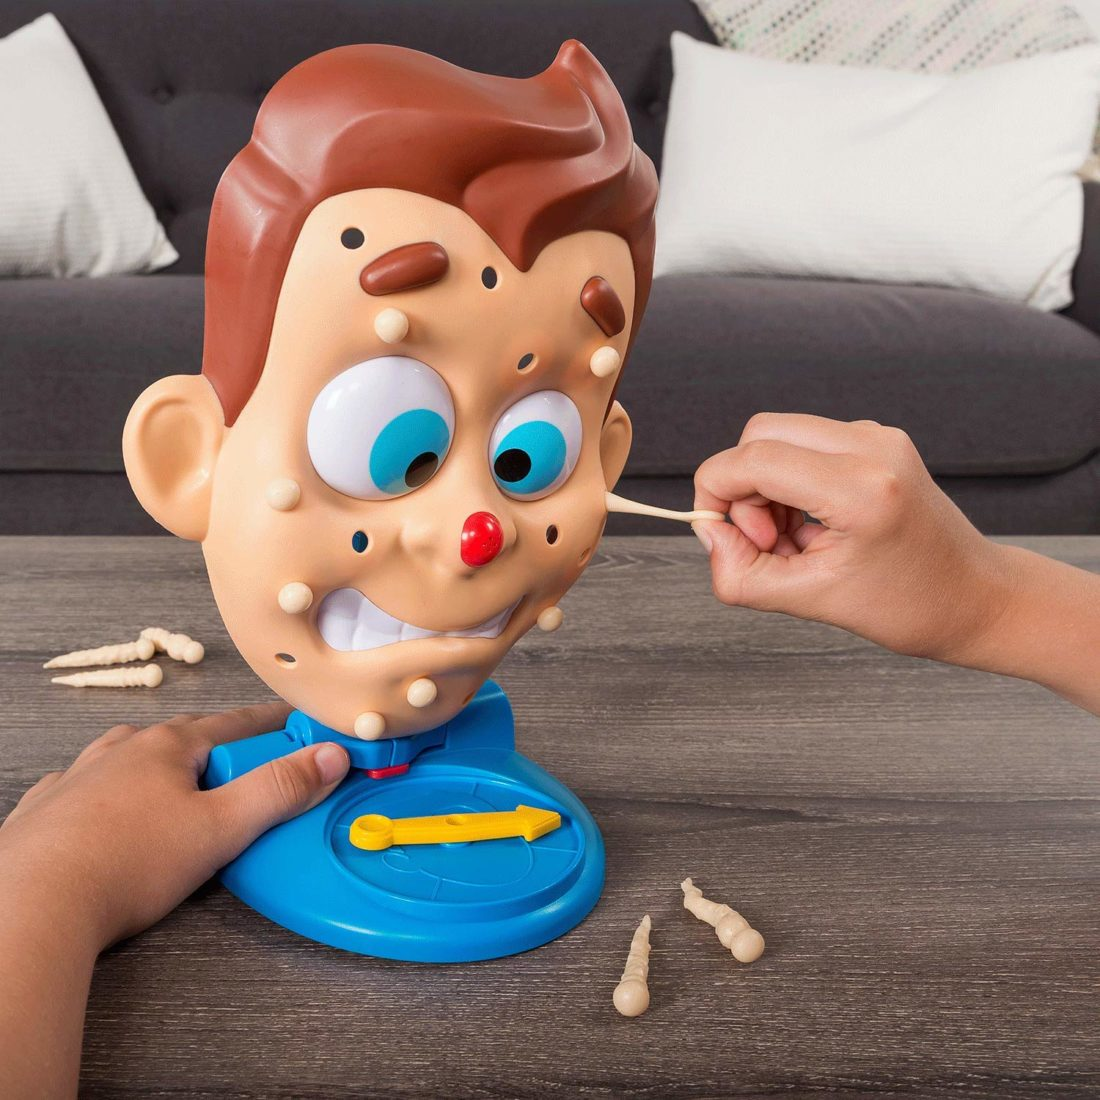 Ready for a little gross-out fun on family game night? Pimple Pete is a hilarious, easy-to-play game for kids aged 5 and up. Read about all the toys on my Holiday Gift Ideas For Kids Guide.